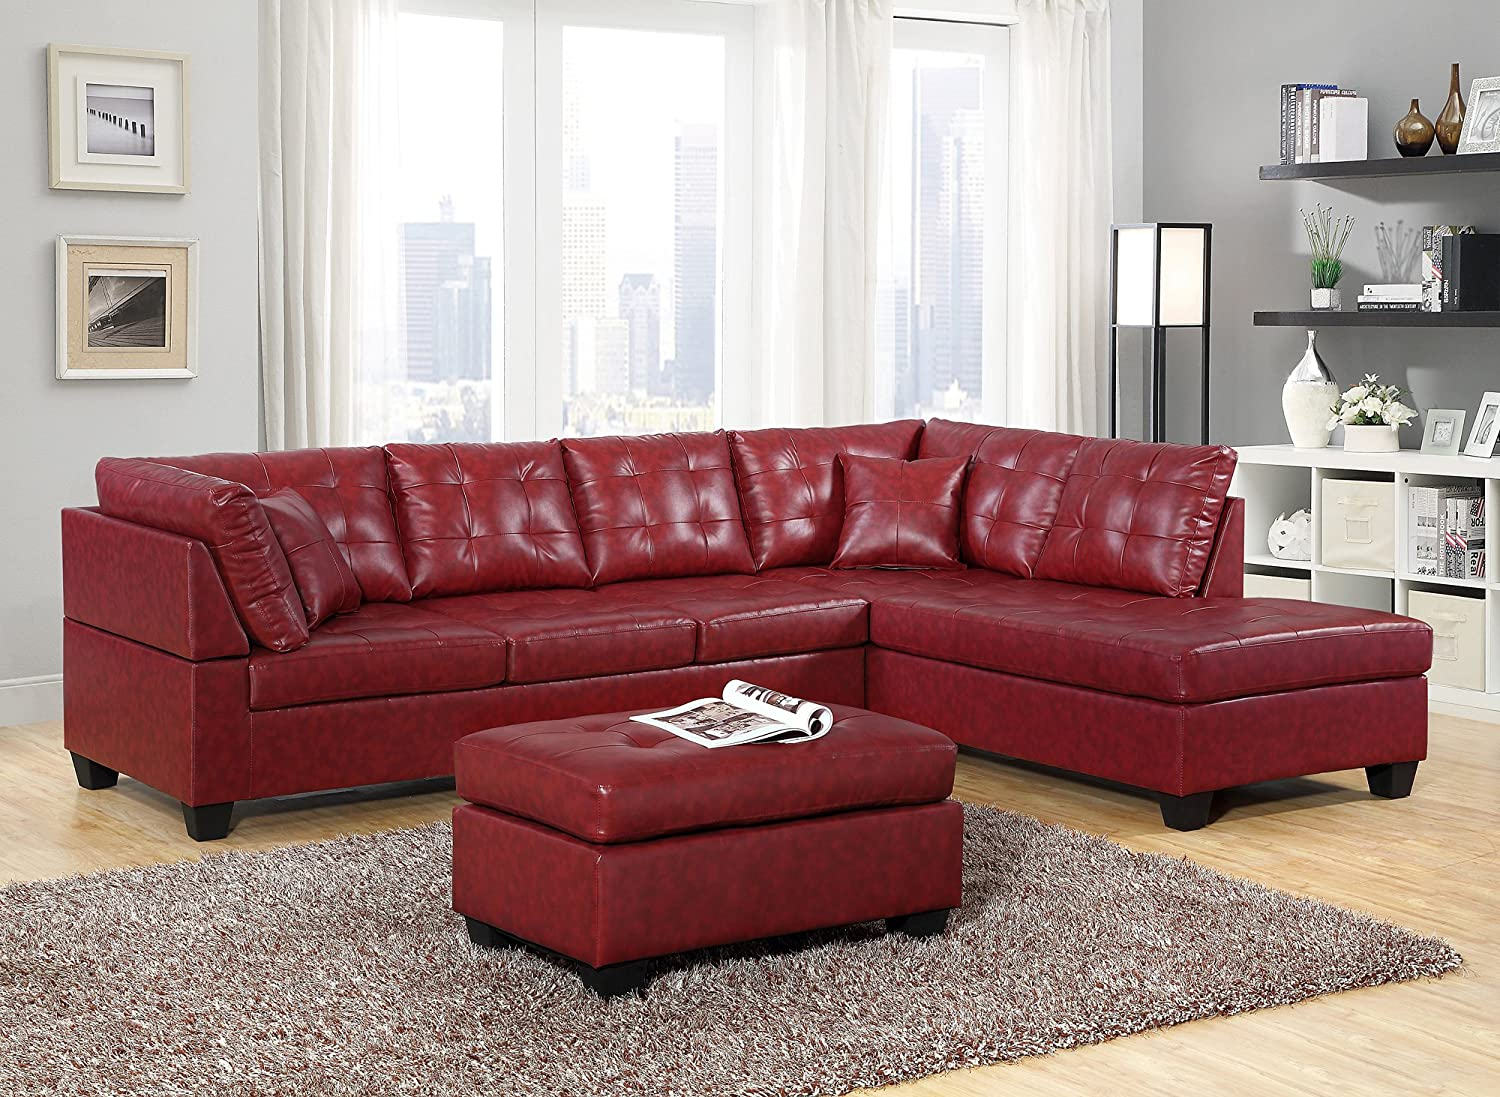 Amazon Com Gtu Furniture Pu Leather Living Room Furniture Sectional